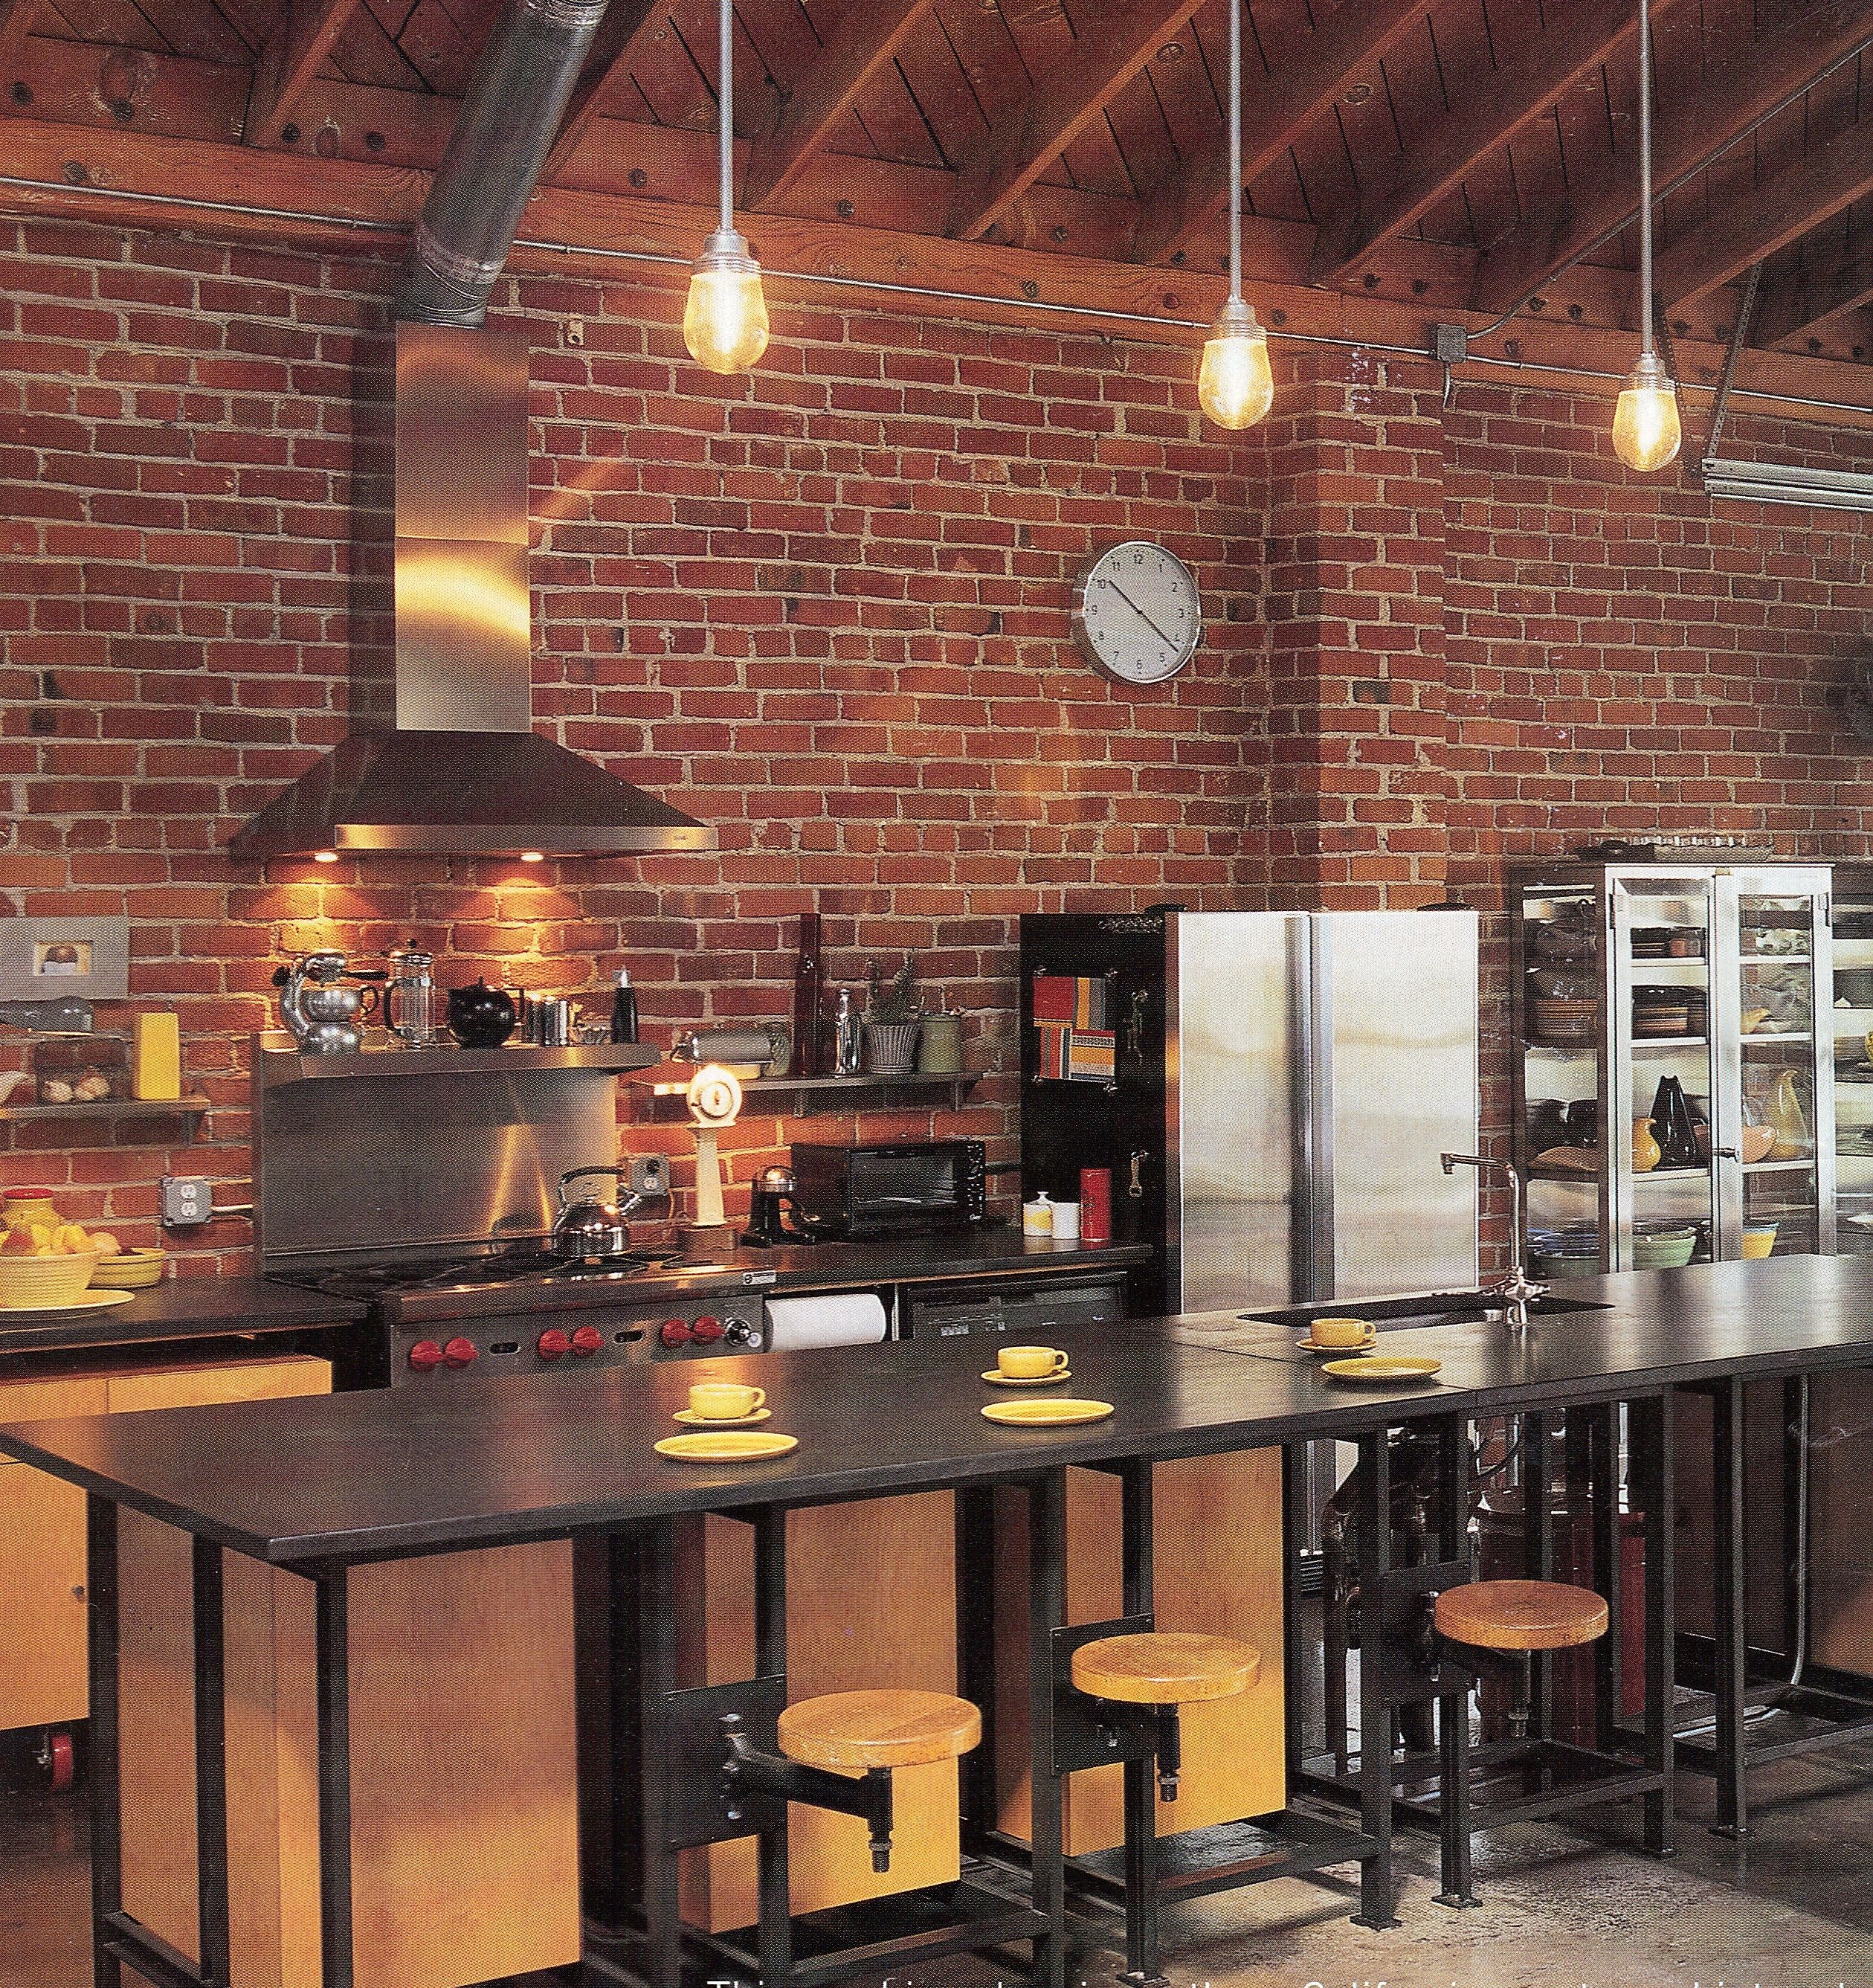 Cuisine Mur Brique Rouge Love The Industrial Style Of This Kitchen Gluttony Kitchen